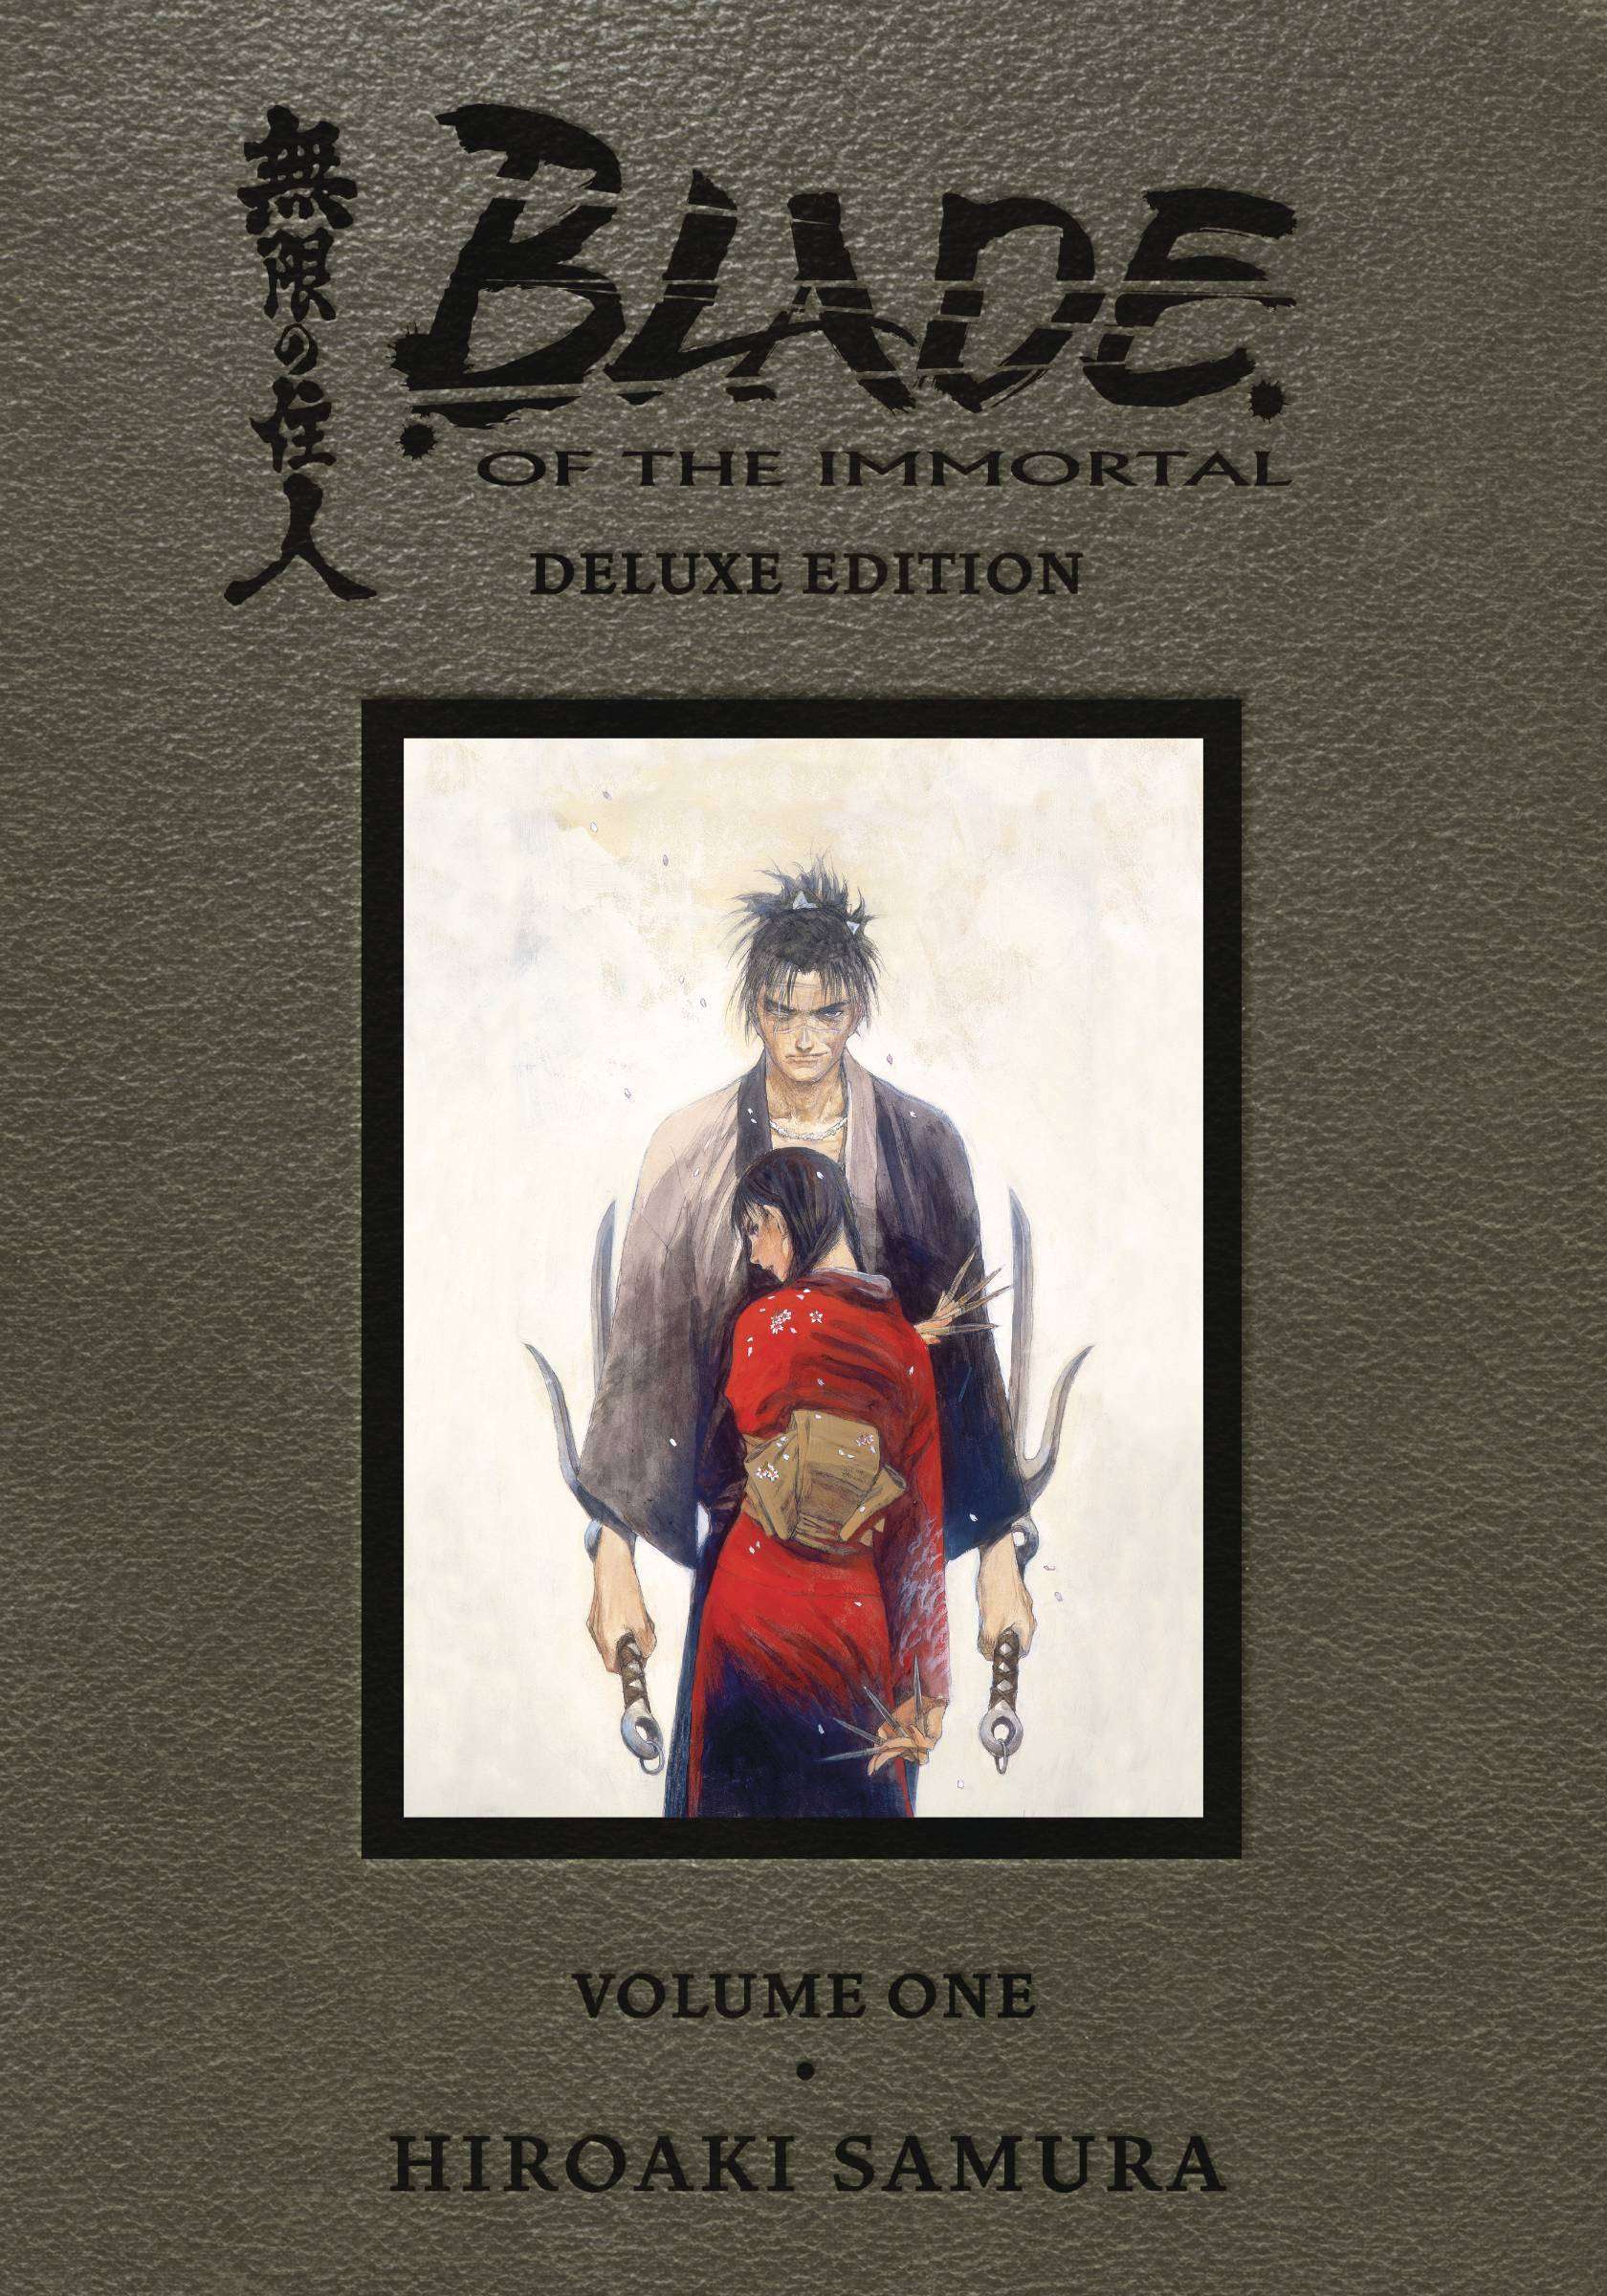 BLADE OF IMMORTAL DLX ED HC VOL 01 (JUN200341) (MR)